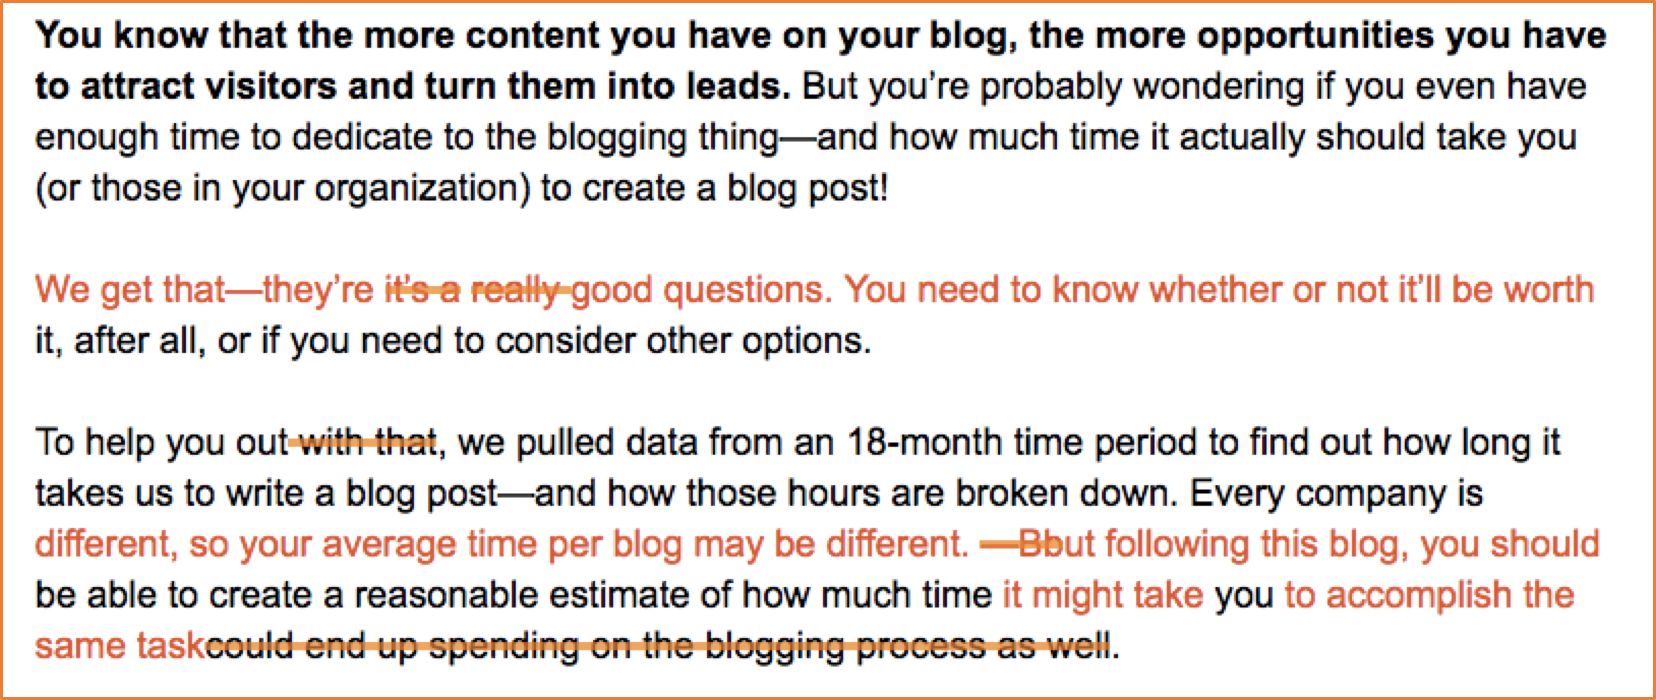 How Long Does It Take To Write A Blog Post-Nectafy - Meredith